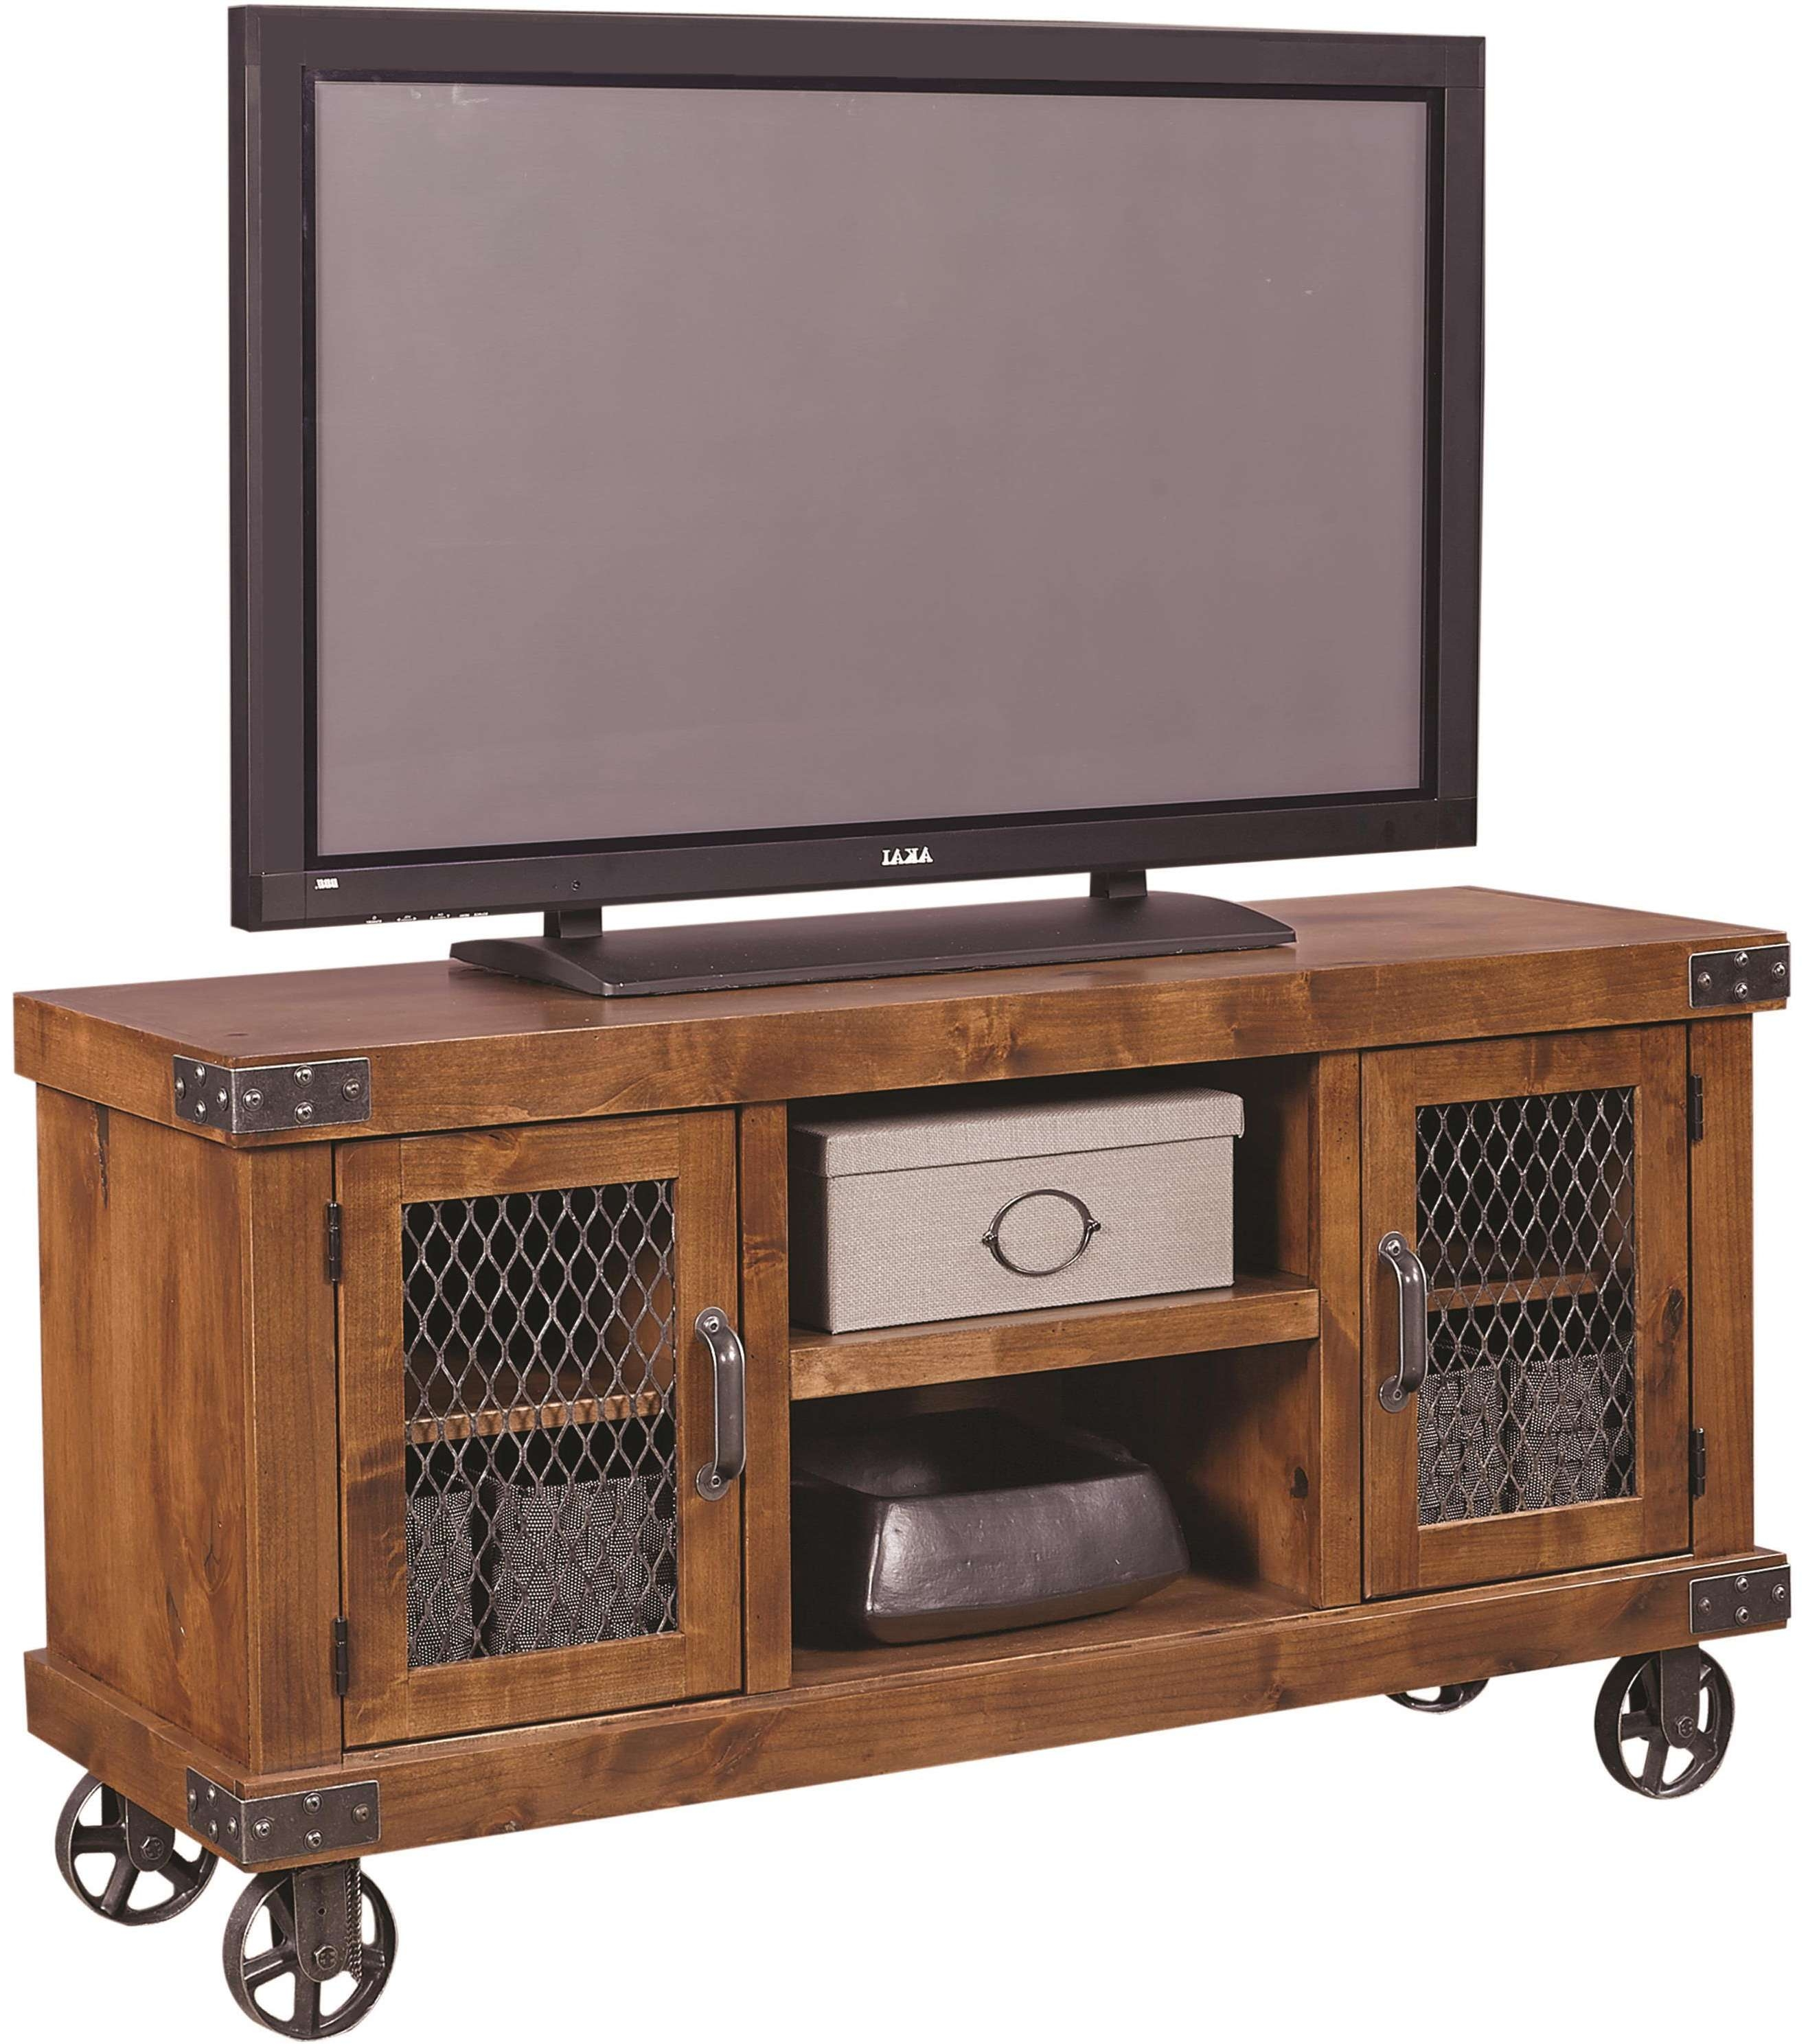 Encouraging Industrial Tv Stand Entertainment Center Rustic Wood In Industrial Tv Cabinets (View 6 of 20)